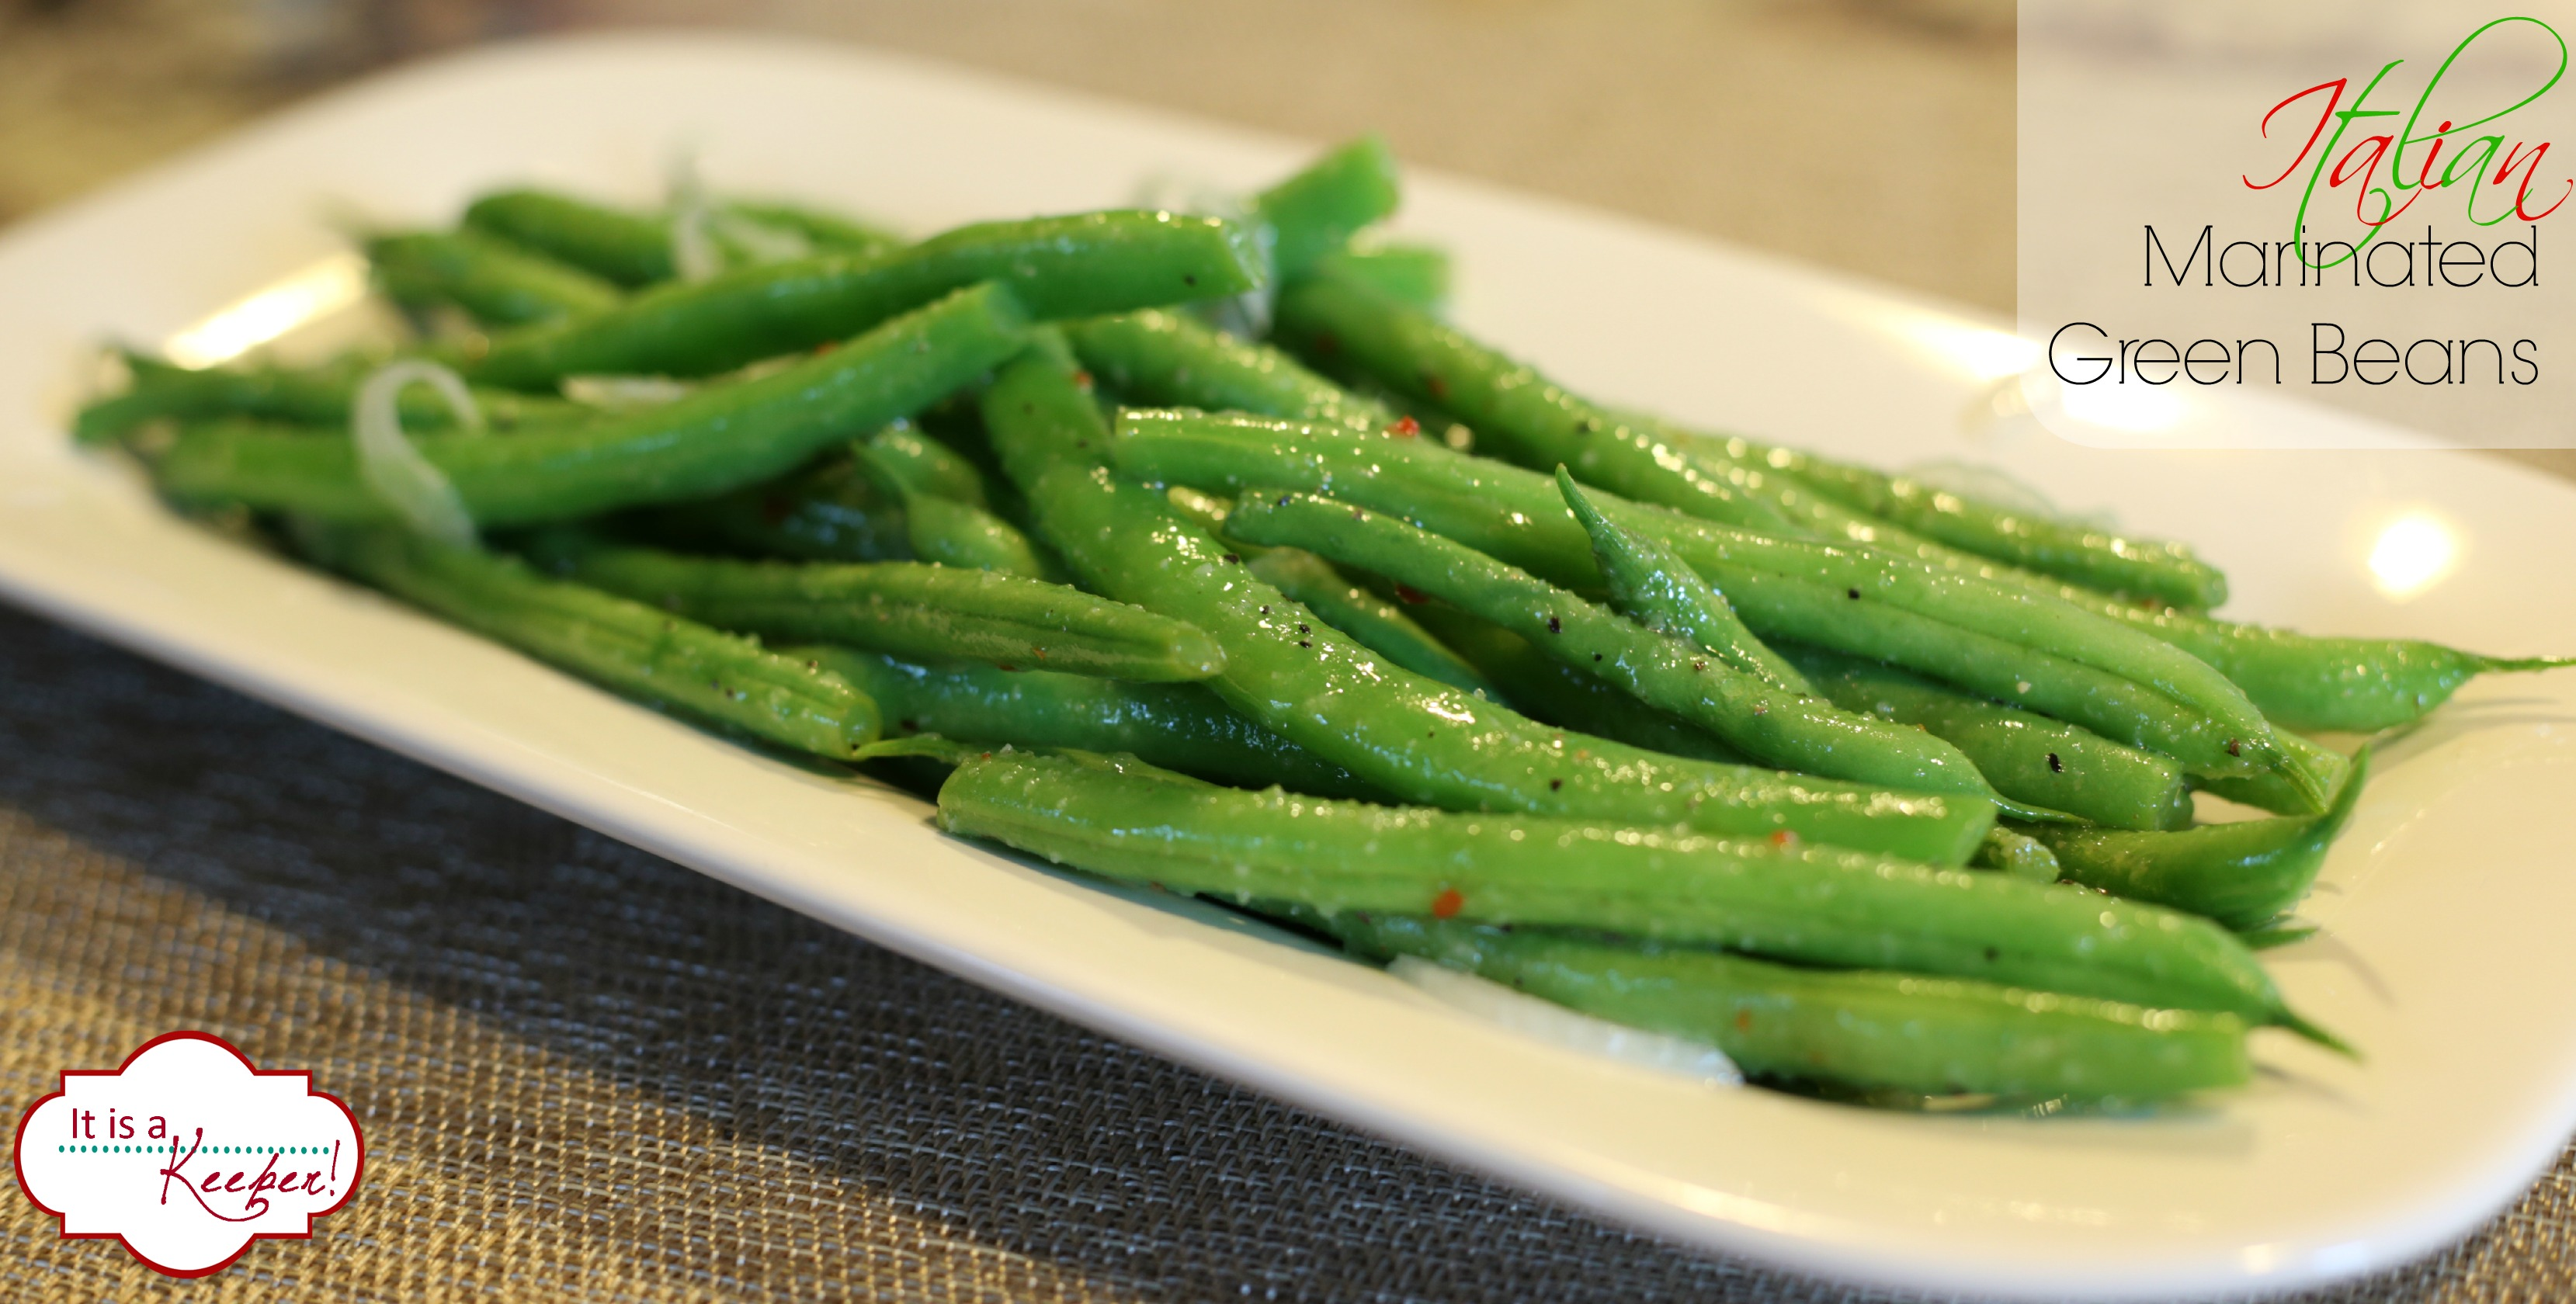 Italian Marinated Green Beans It's a Keeper